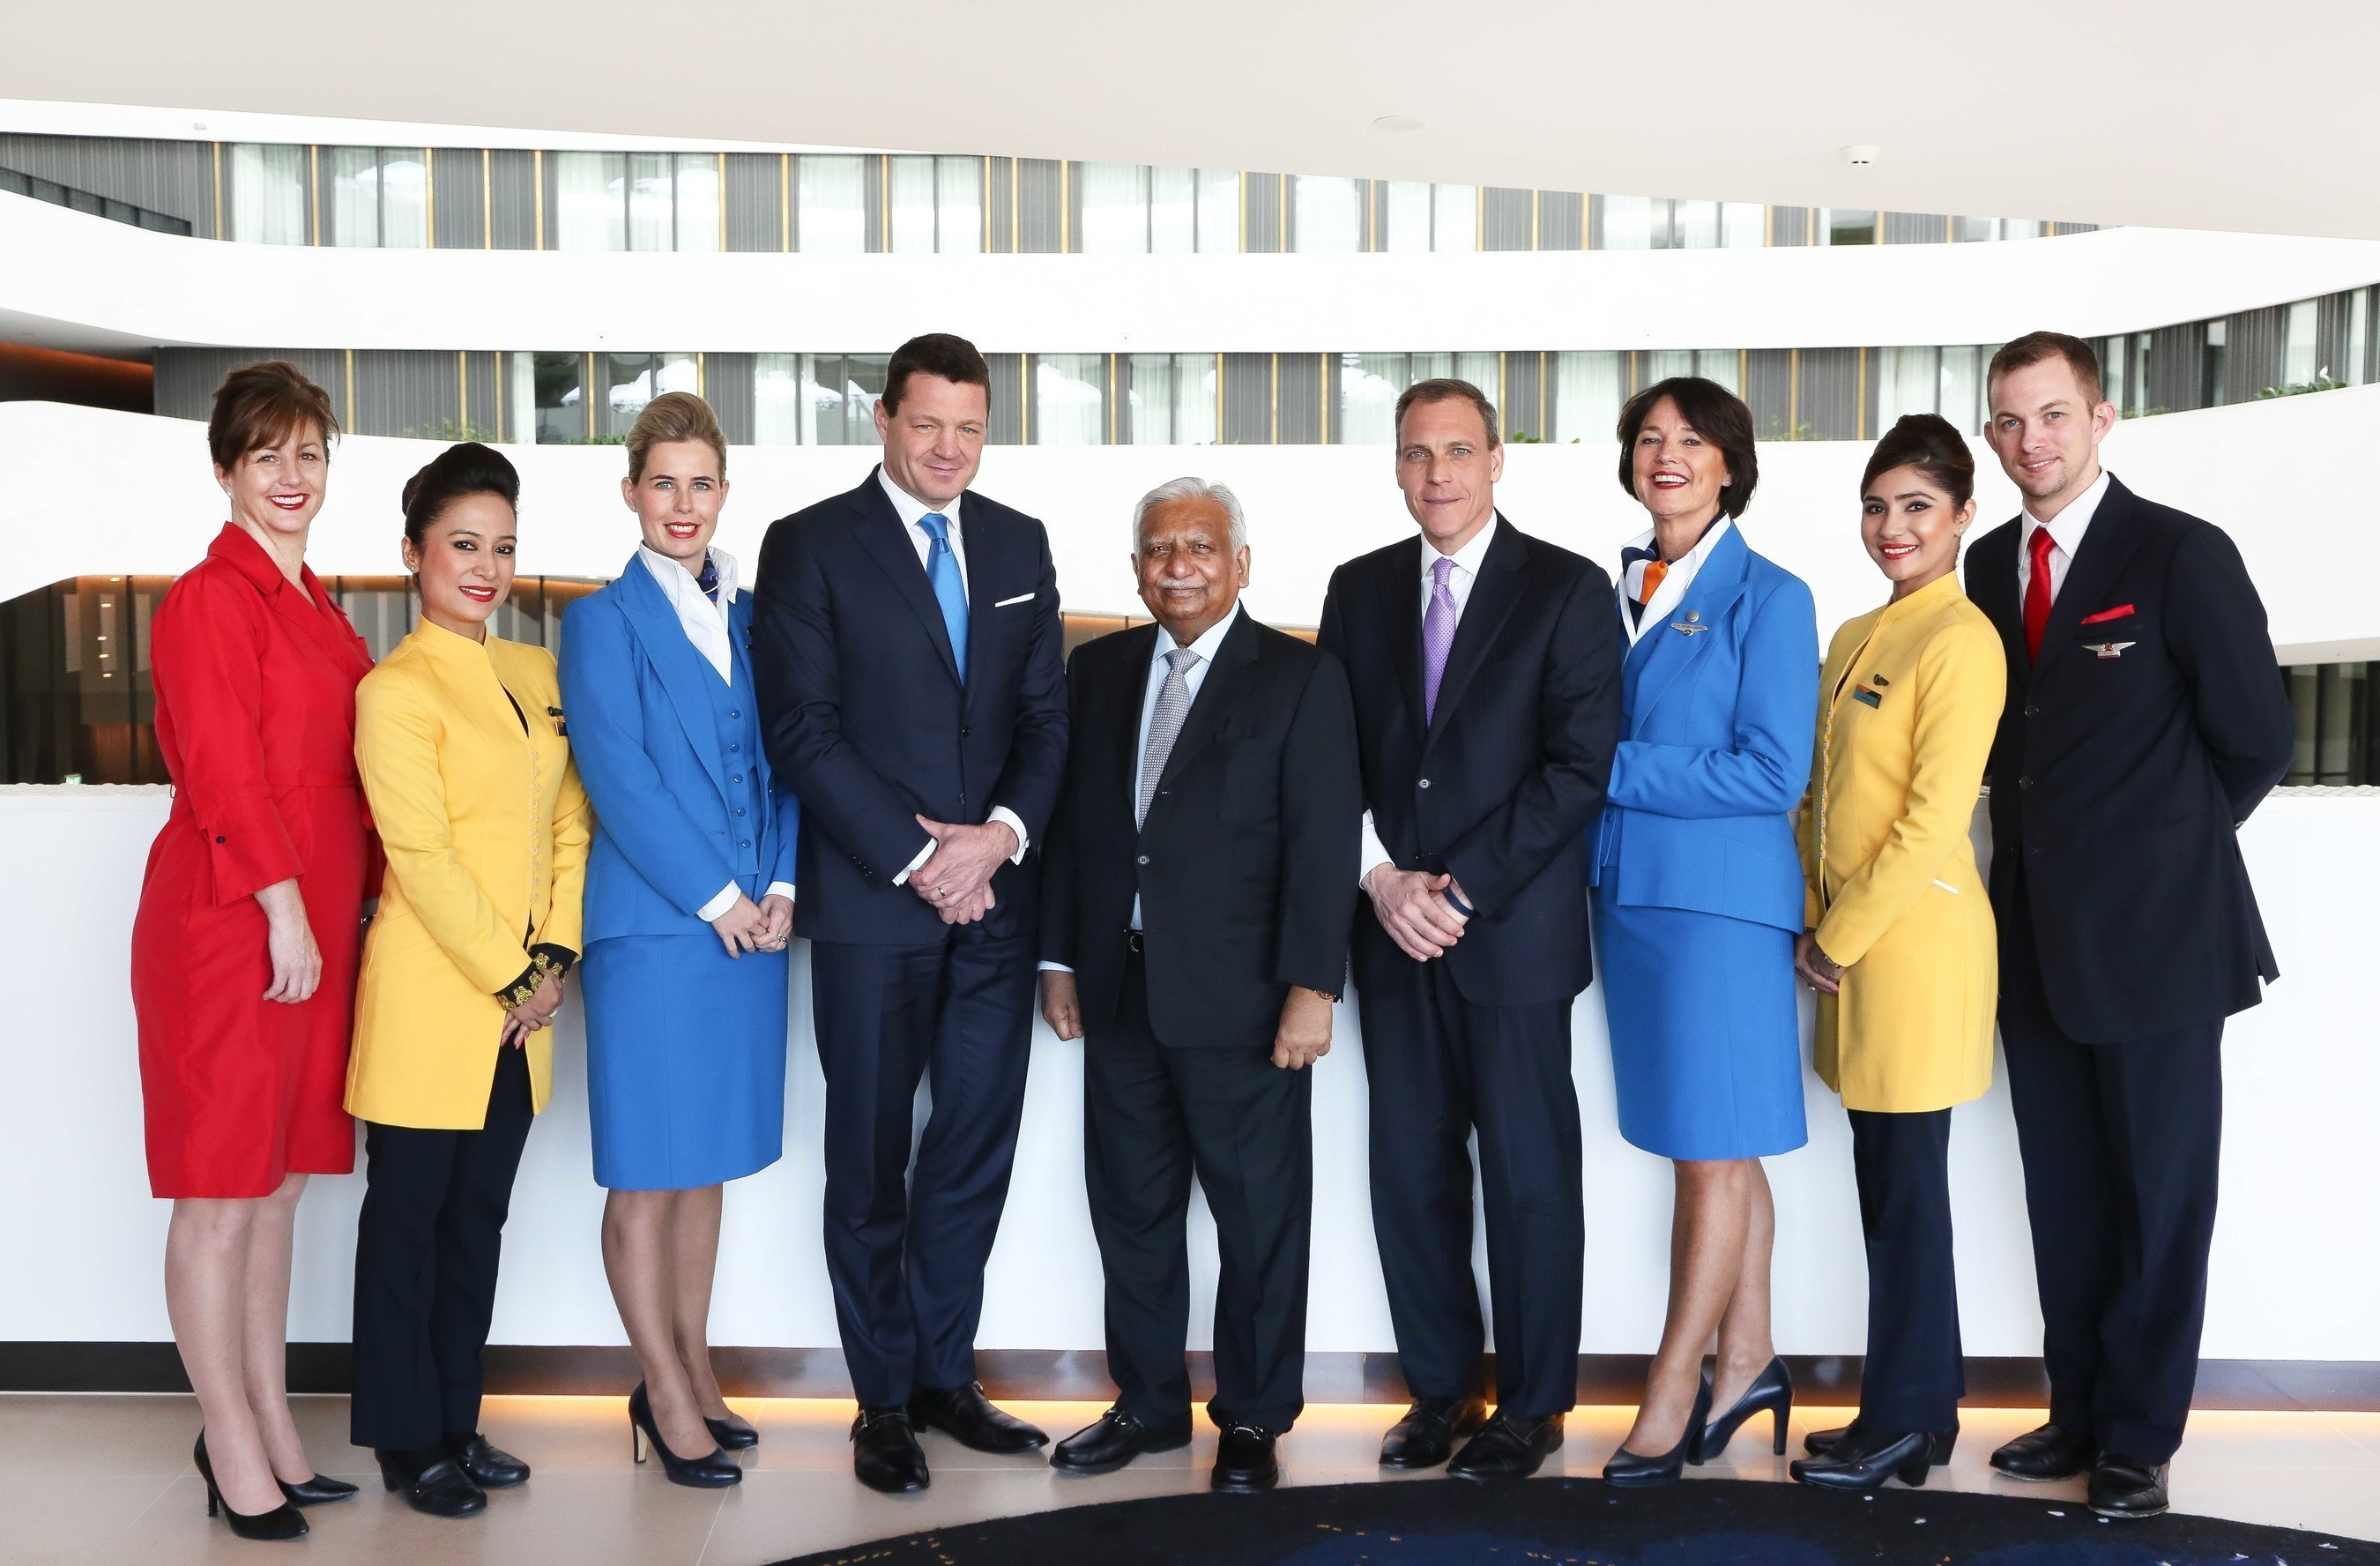 Delta expands network between North America, Europe and India through codeshare with Jet Airways and KLM